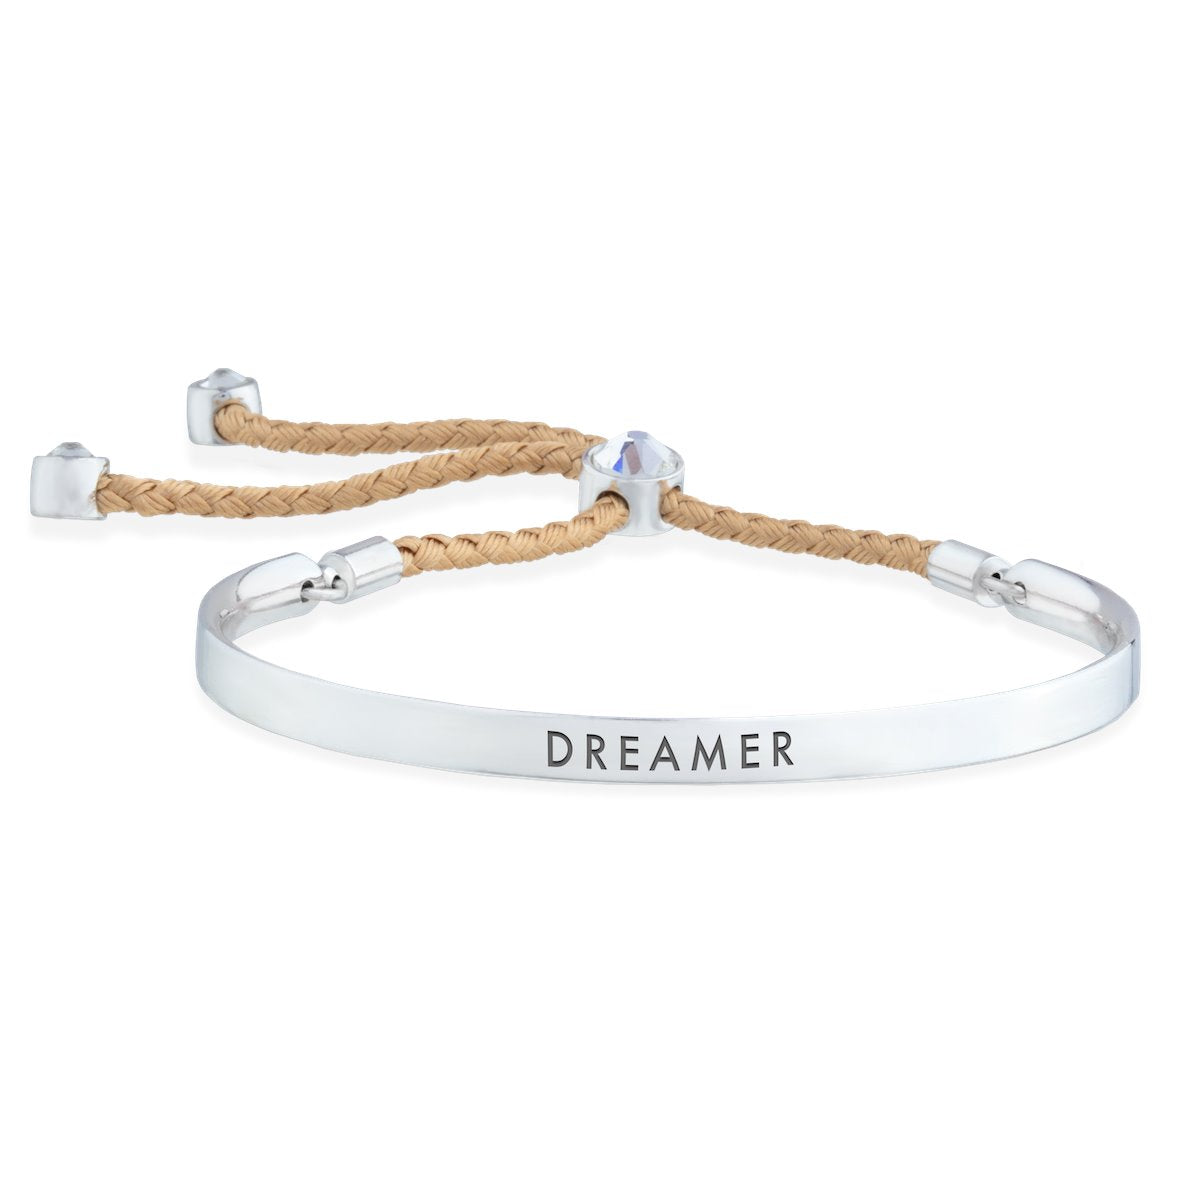 Dreamer – Words of Empowerment Bracelet